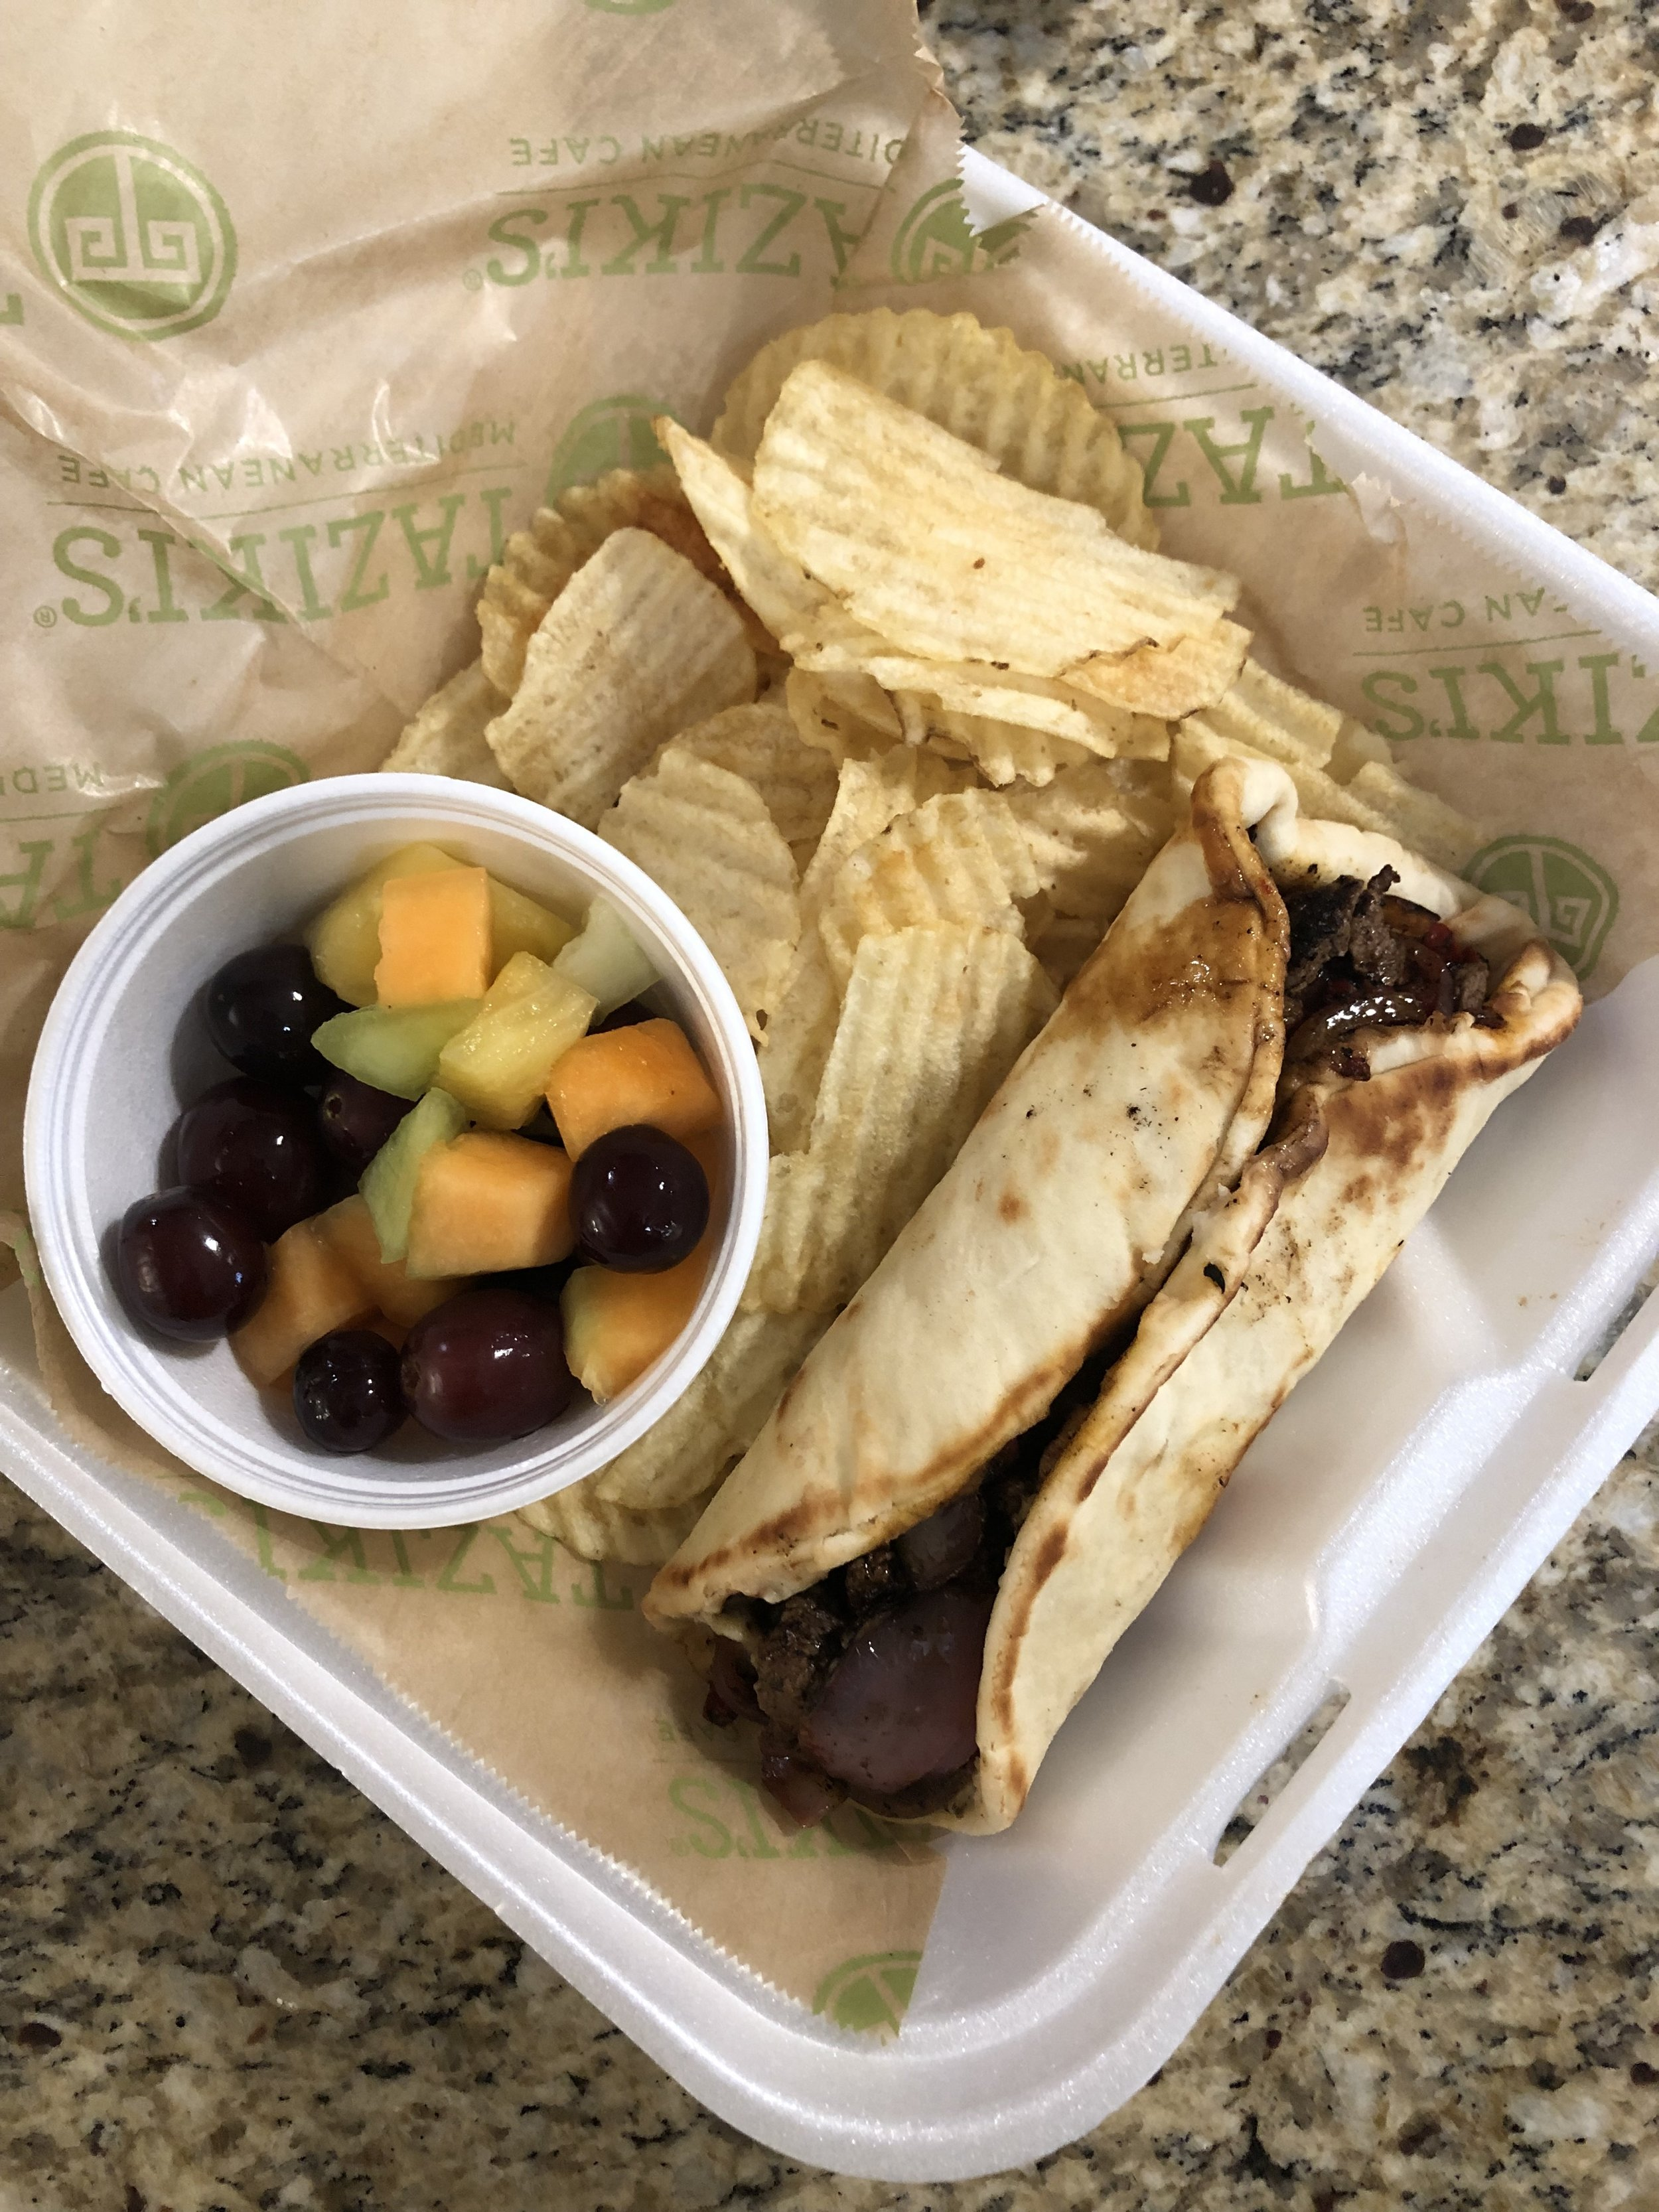 …ohhh and lots of different carbs here from chips, pita and fruit!….